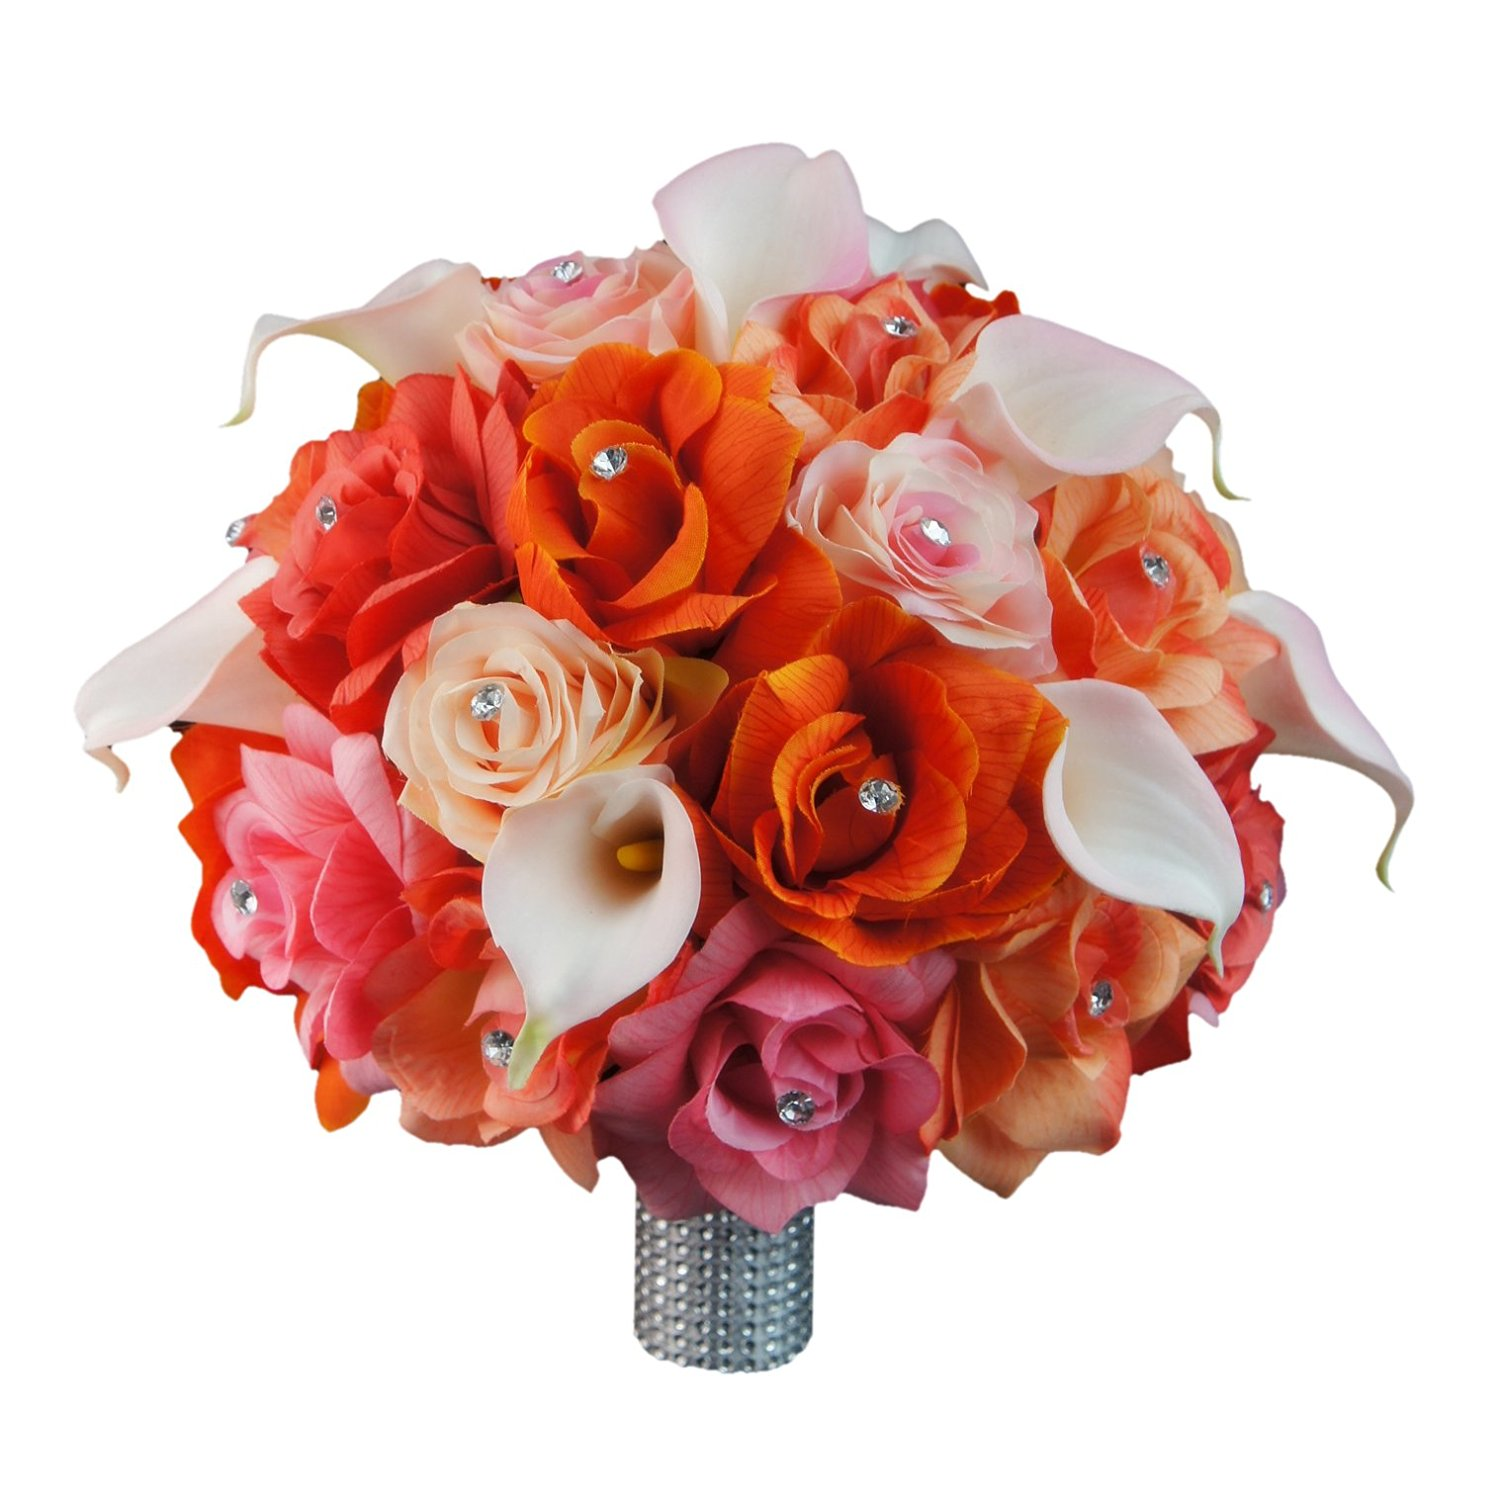 Cheap Coral Bouquet, find Coral Bouquet deals on line at Alibaba.com